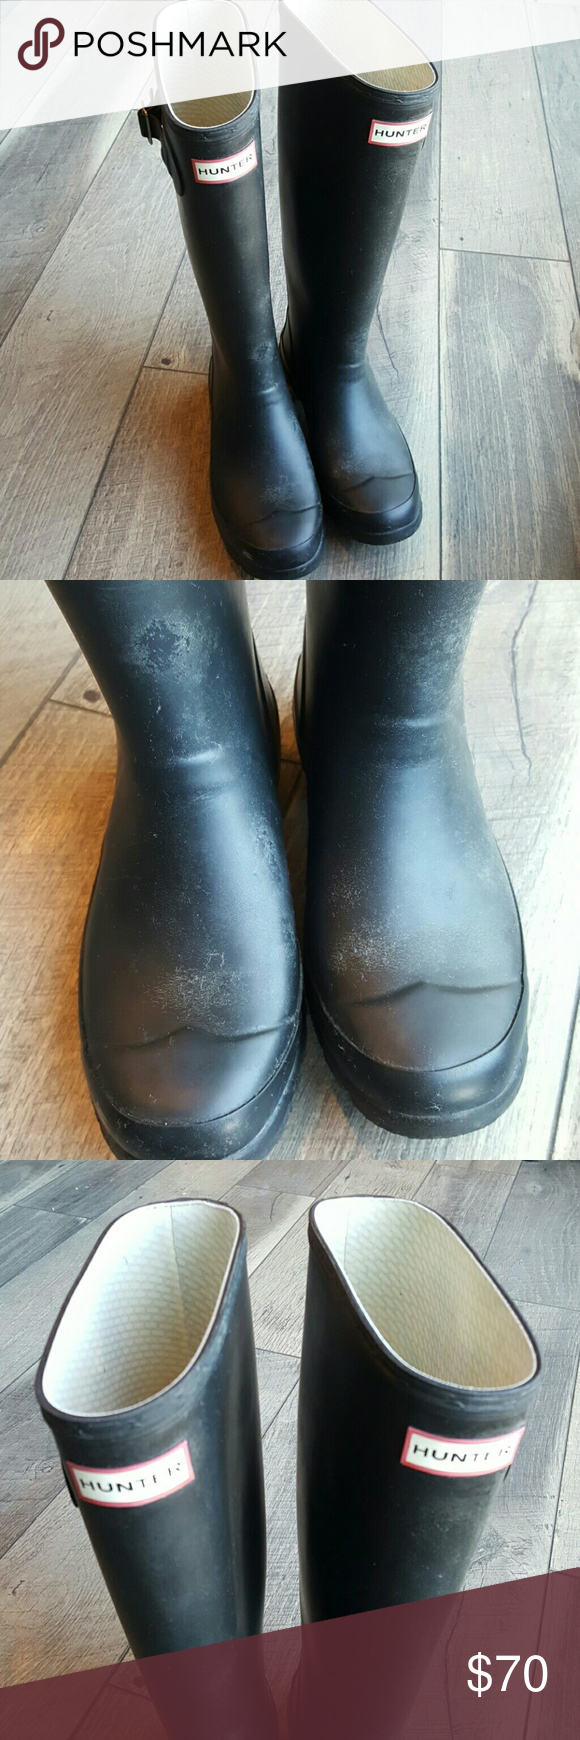 Womens Huntress Hunter Boots Black 6 GUC Preloved Womens Huntress Hunter Boots. Color is black. Could use a good shining. Good used condition.  Please see details in pictures Hunter Boots Shoes Winter & Rain Boots